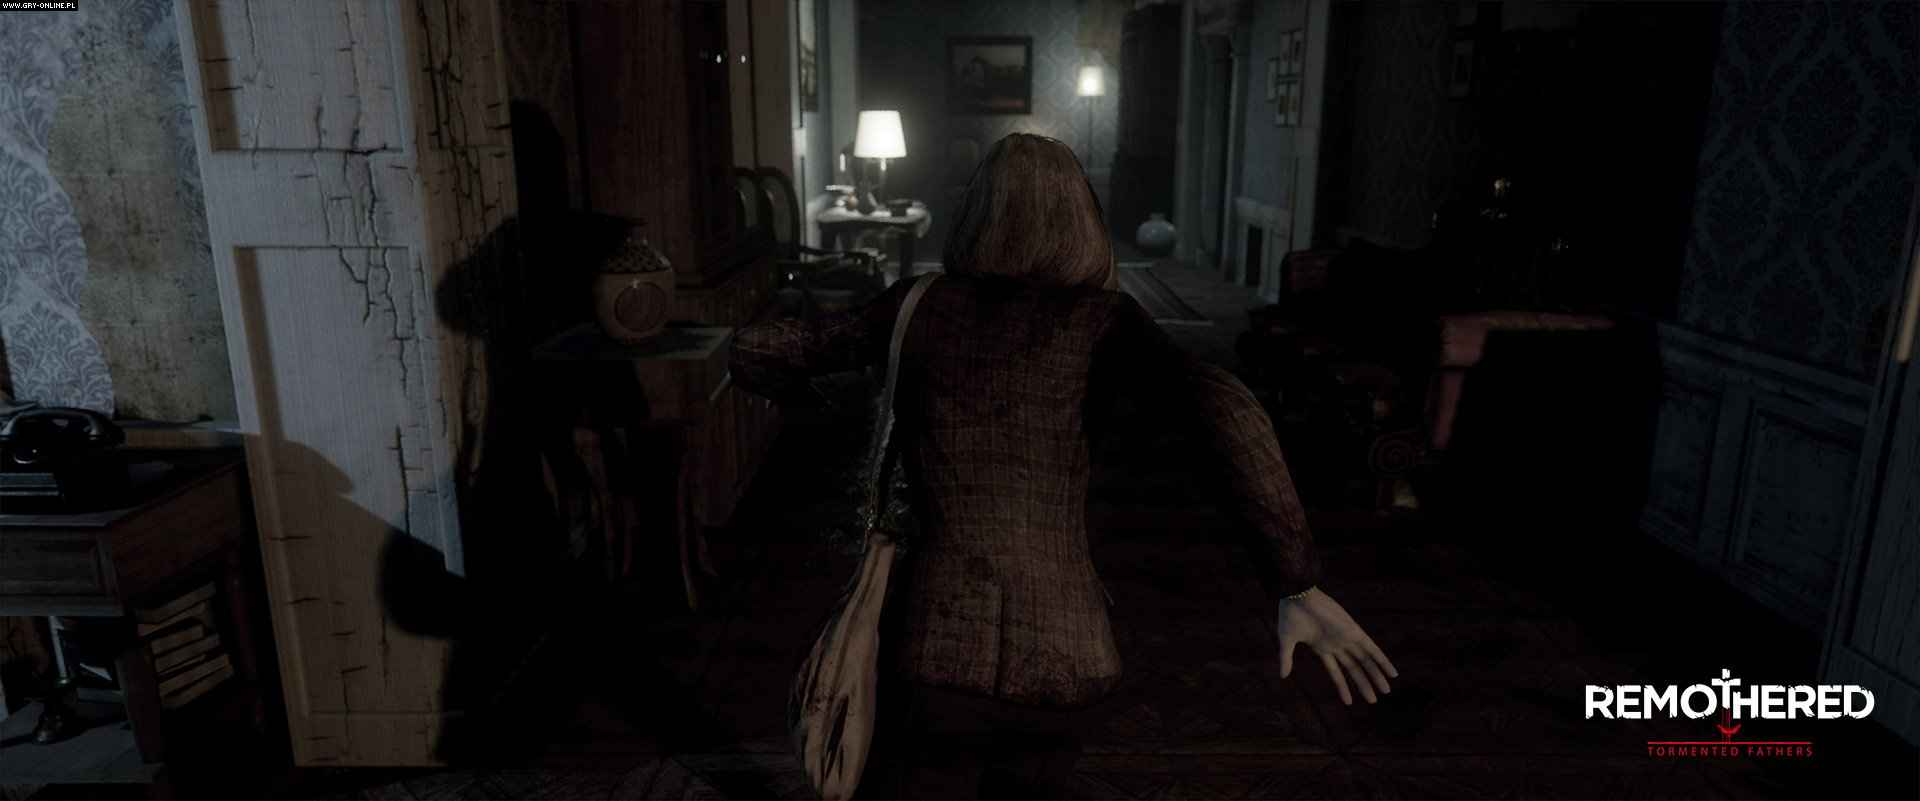 Remothered: Tormented Fathers 01